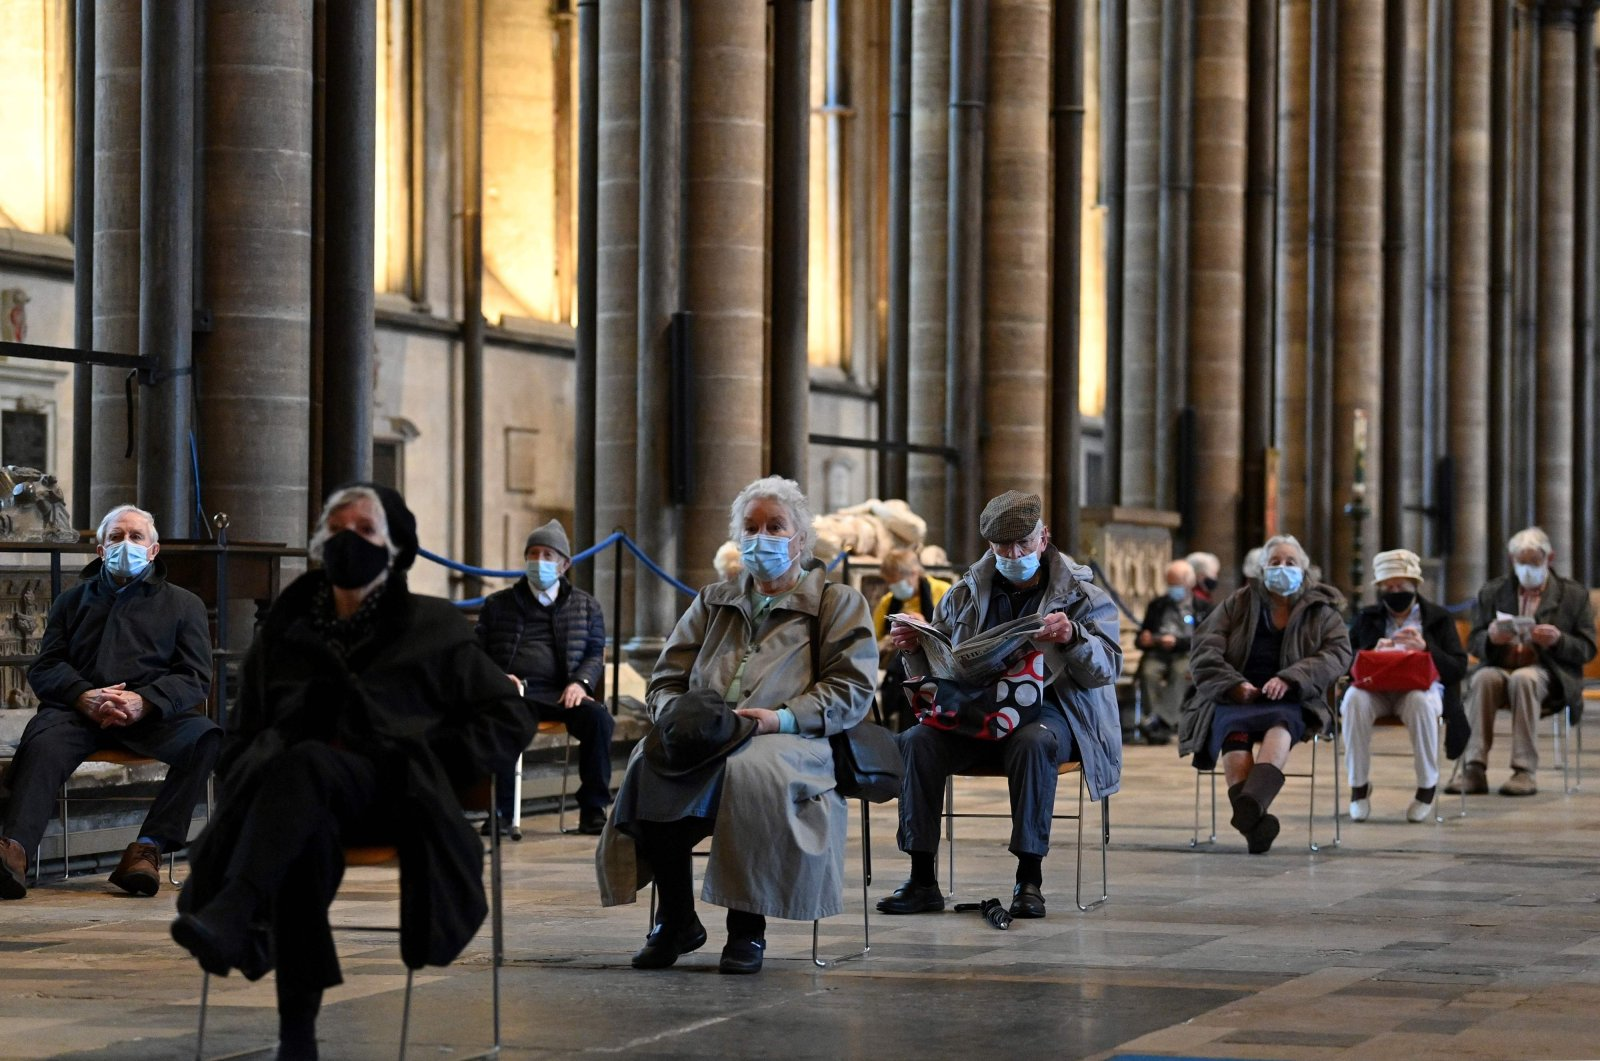 Members of the public sit socially distanced after receiving a dose of a COVID-19 vaccine at Salisbury cathedral, which has been converted into a temporary vaccination center in Salisbury, southwest England, Jan. 20, 2021. (AFP Photo)